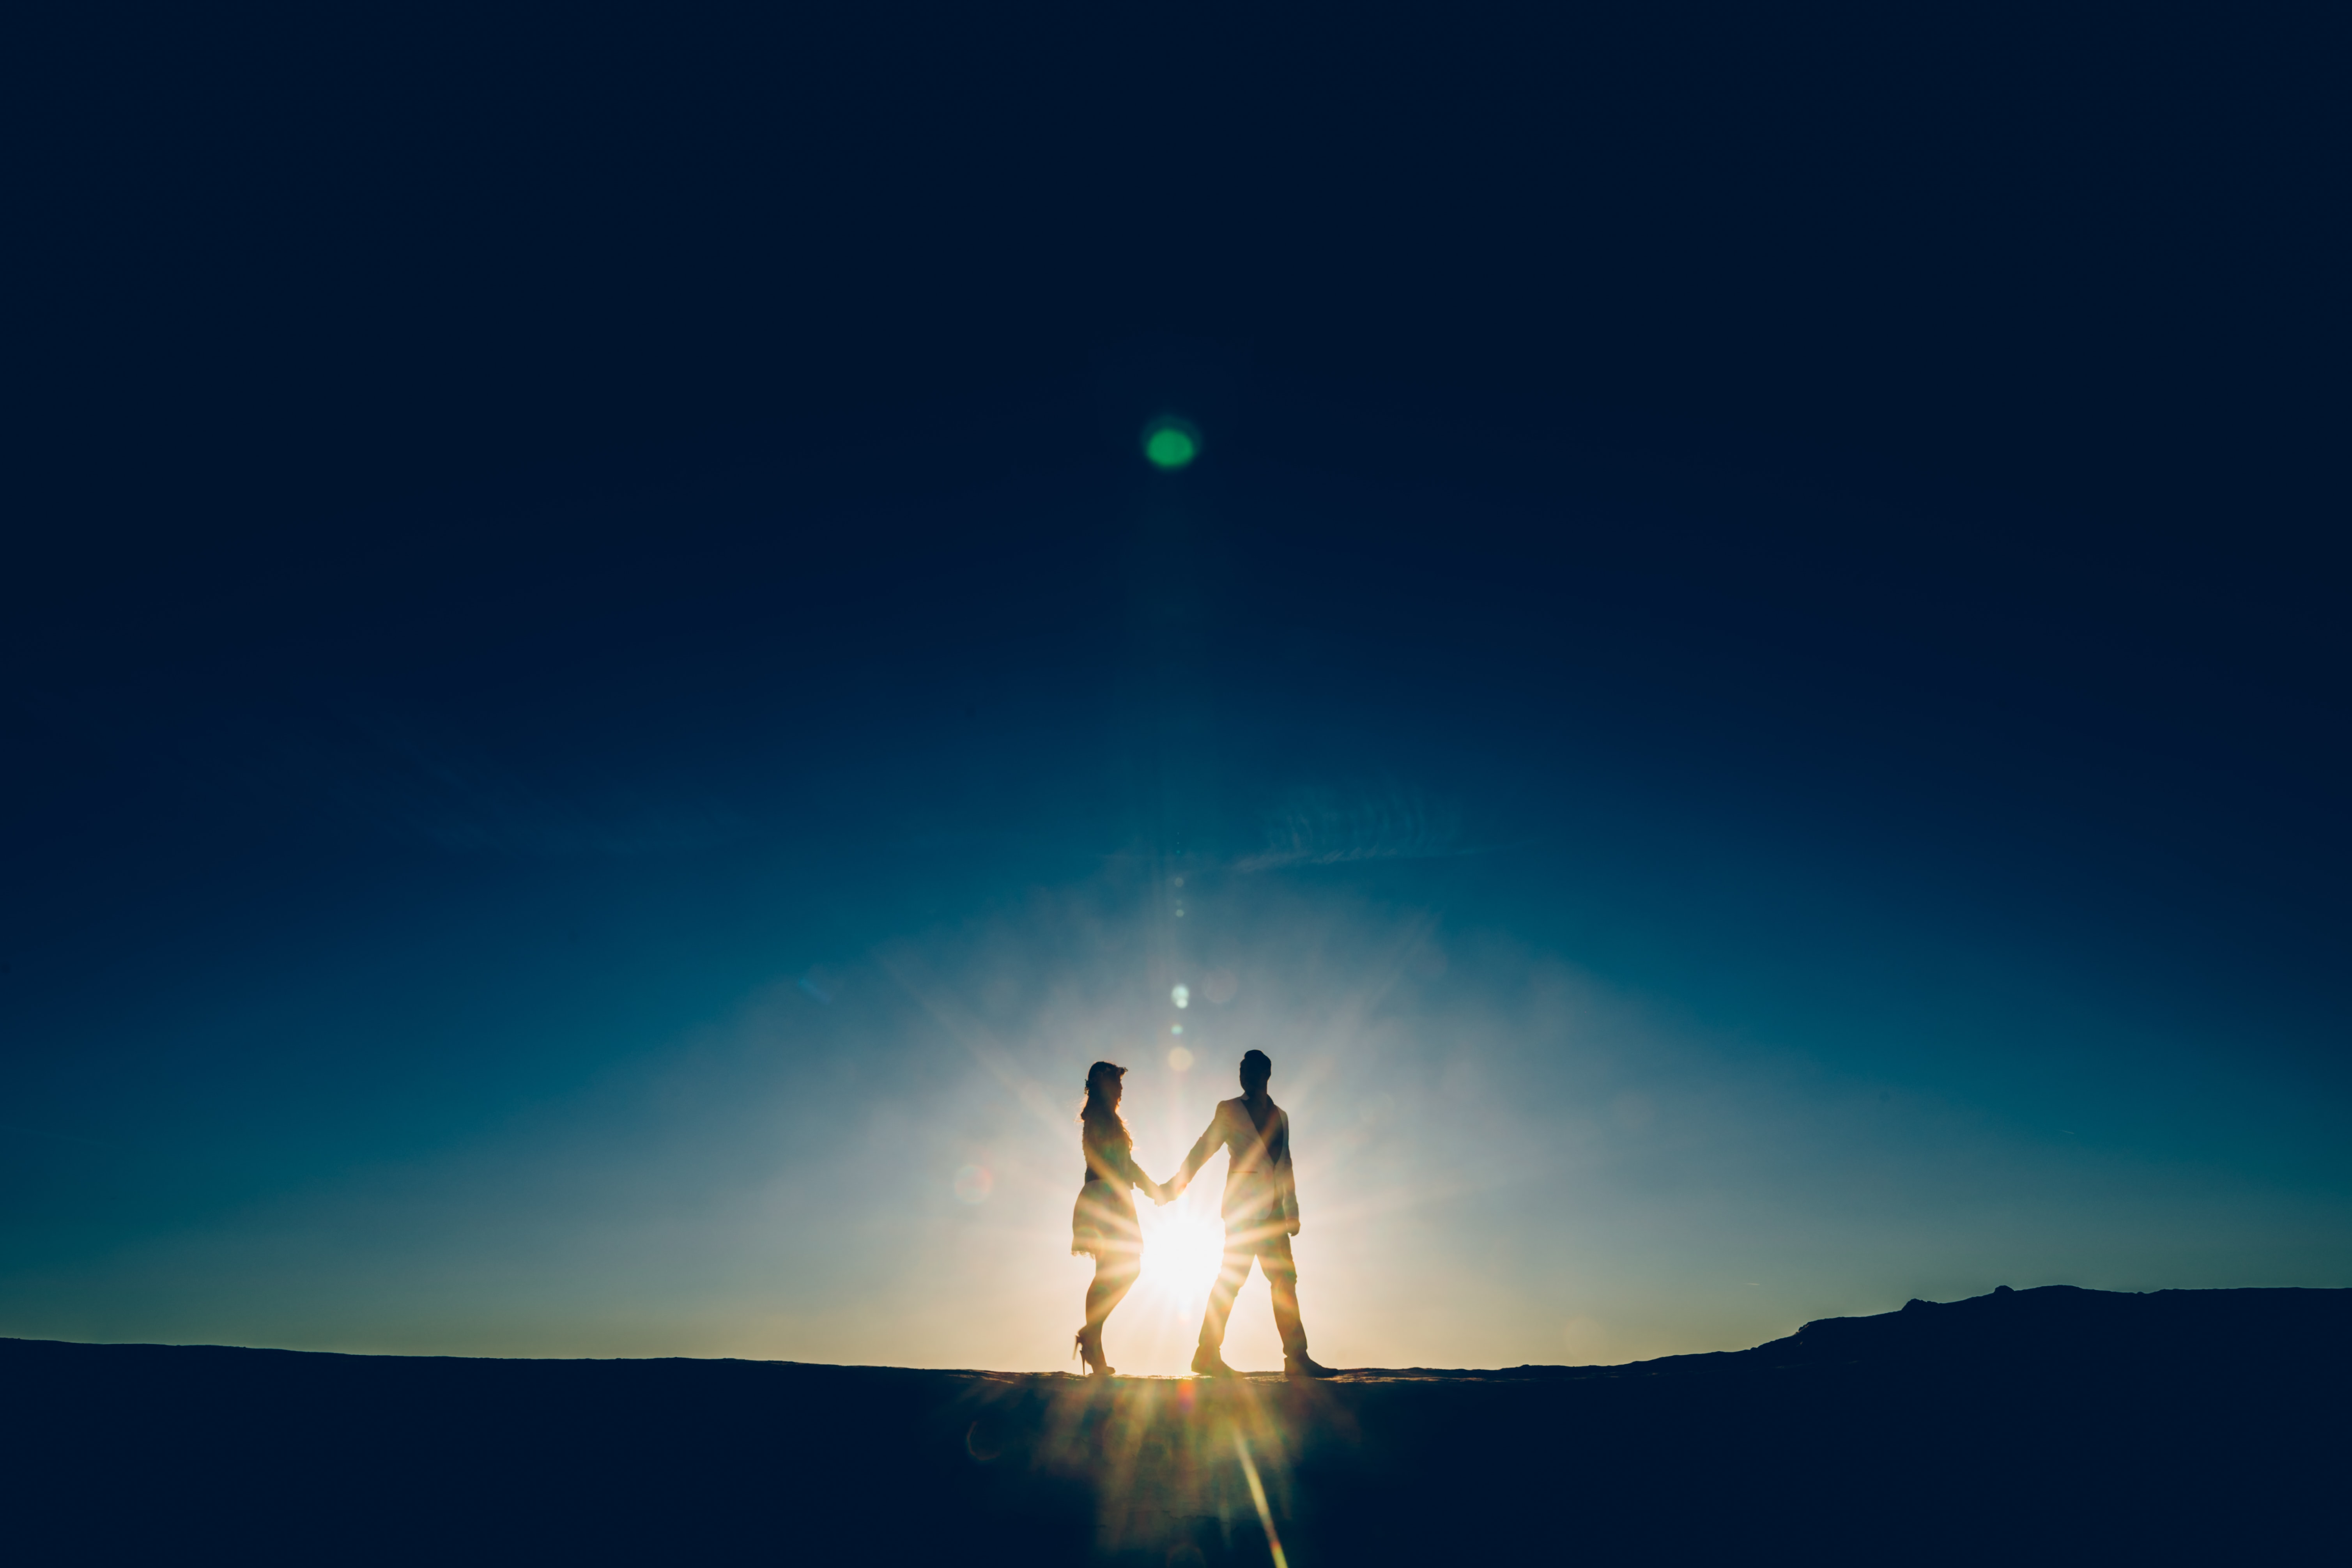 silhouette of two people holding each other's hand during golden hour